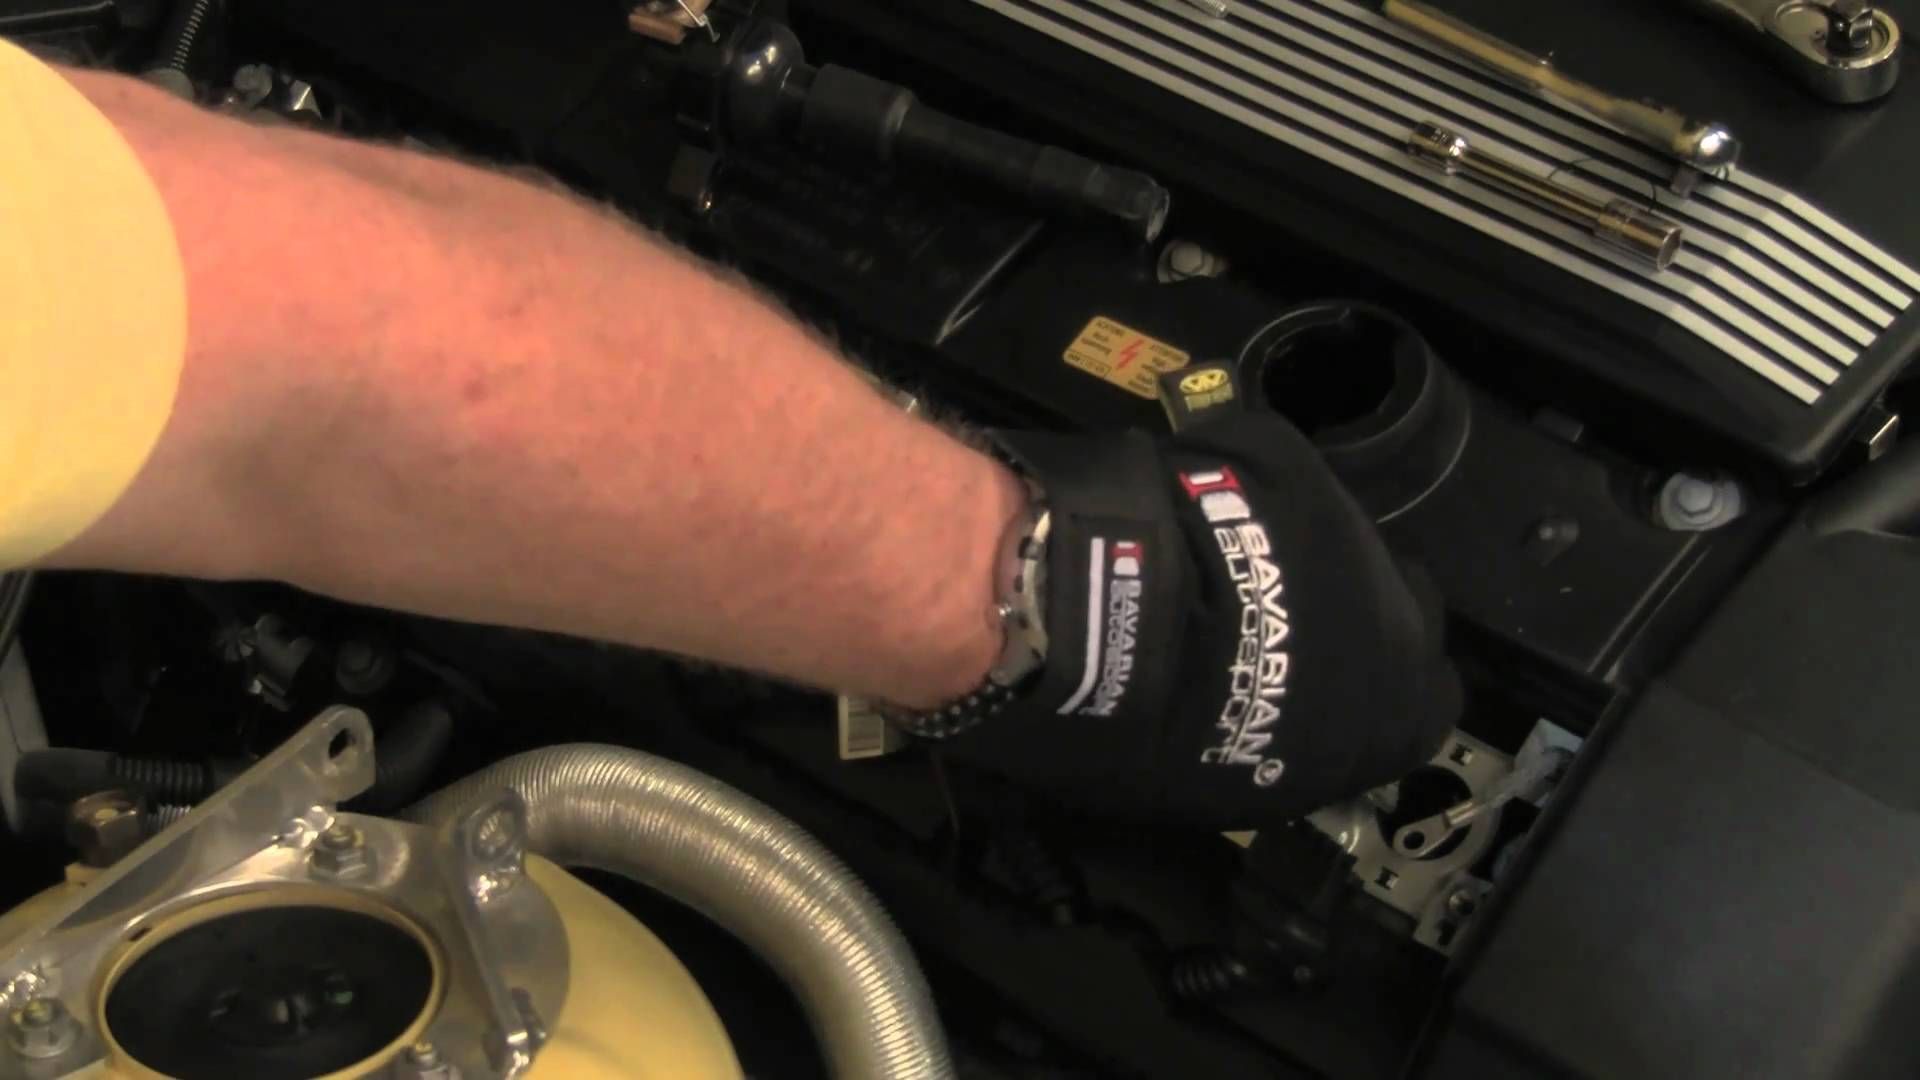 Replacing Bmw Spark Plugs Ignition Coils Spark Plug Ignition Coil Bmw